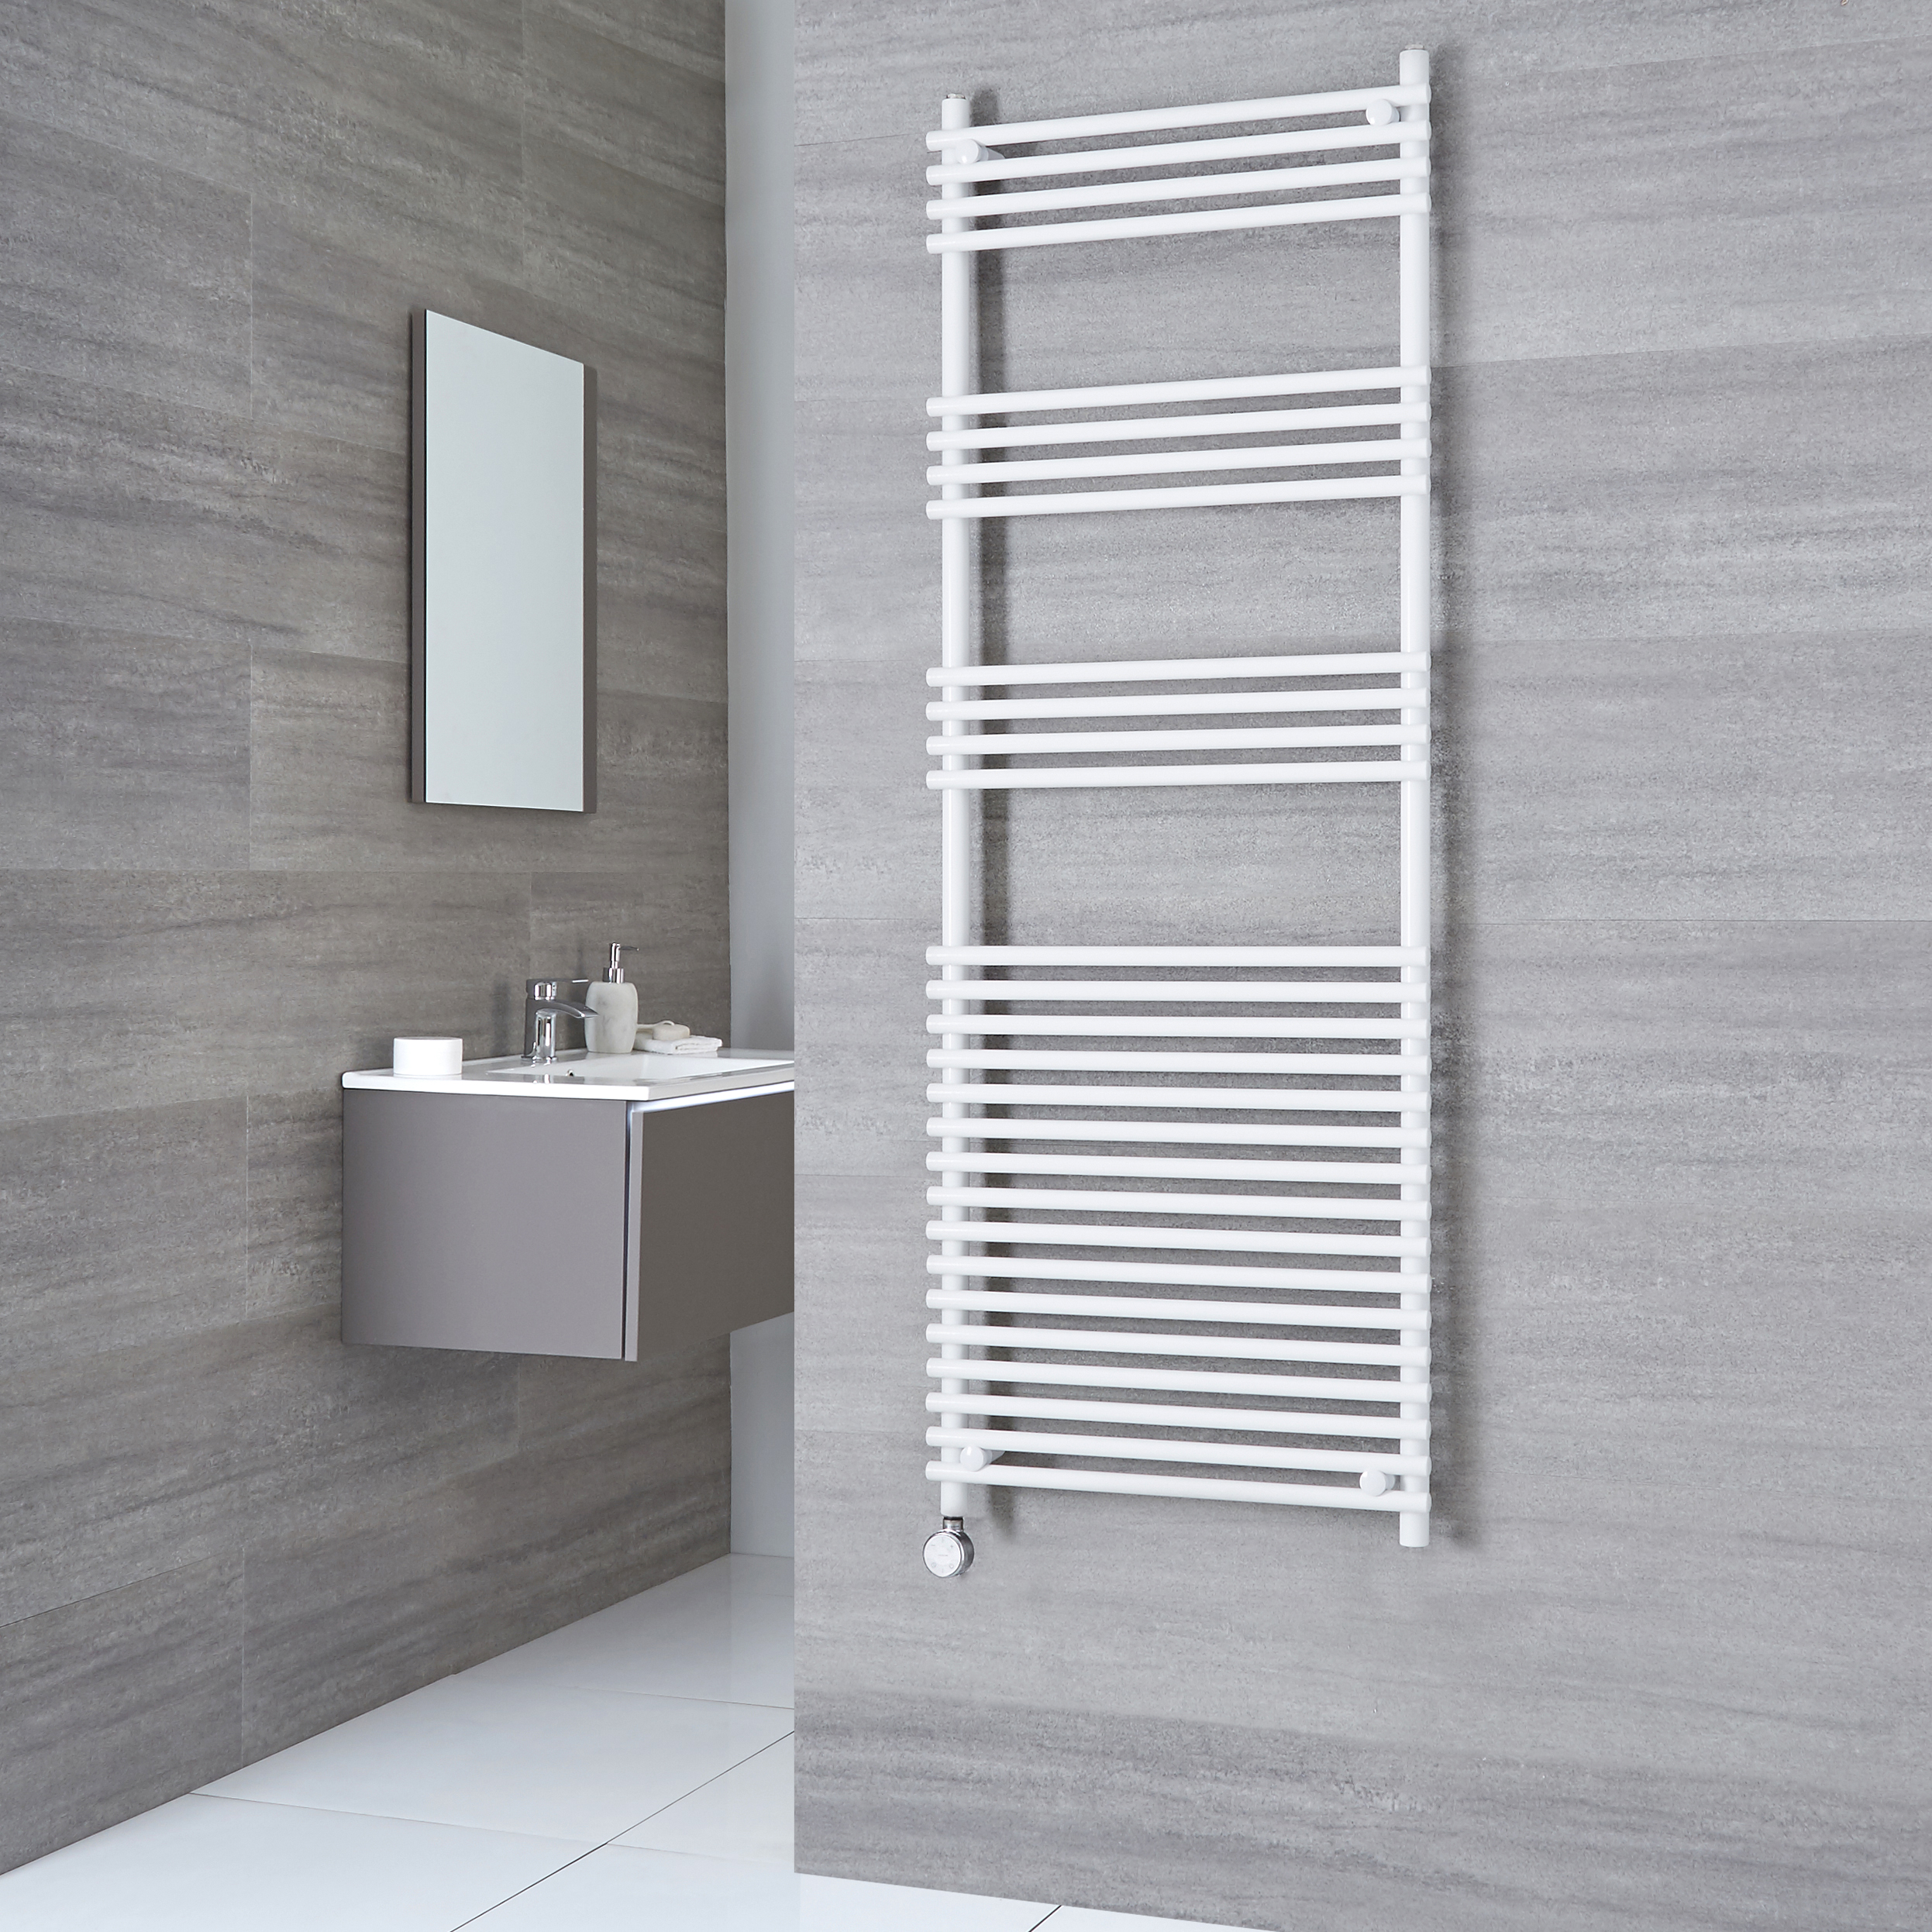 Kudox Harrogate Electric - Flat White Bar on Bar Towel Rail - 1650mm x 450mm